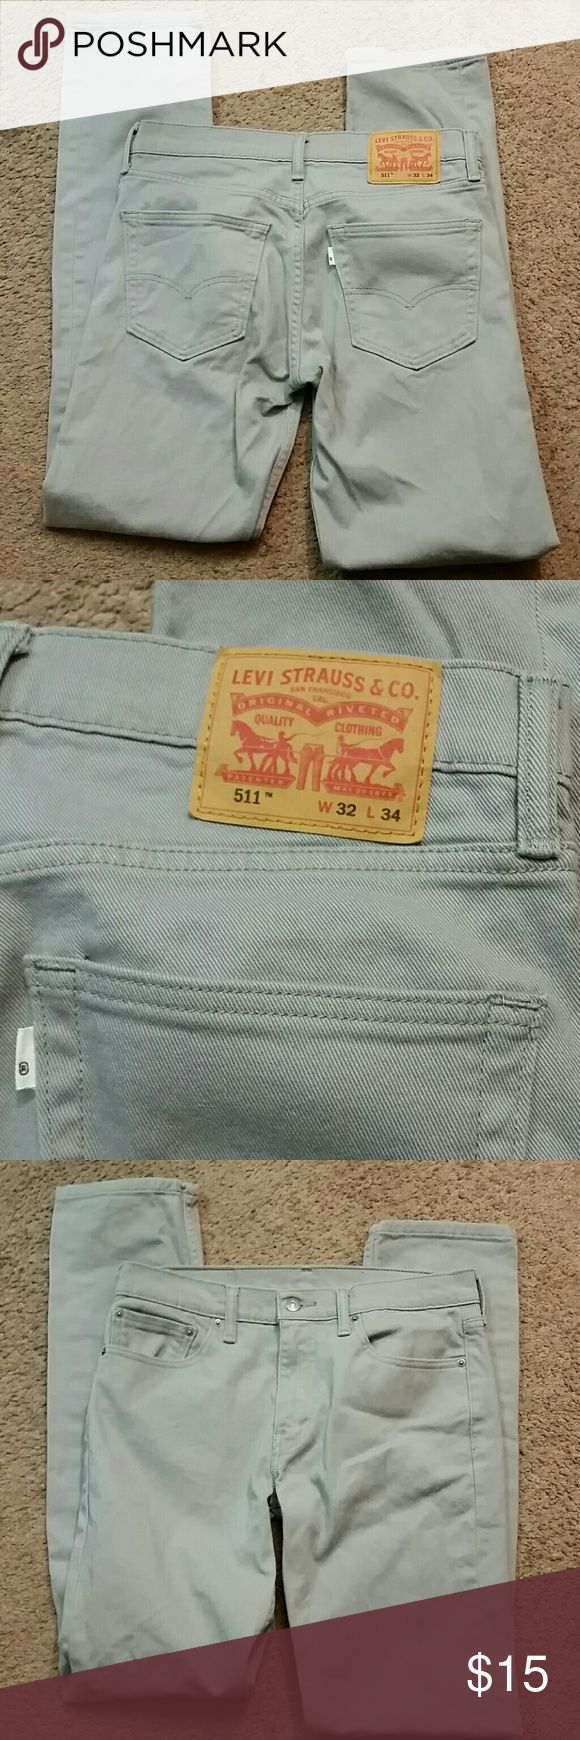 Mens Levi Strauss & Co 511 Pants Skinny style mens Pants. Gray and in good condition. A good buy. Levi's Pants